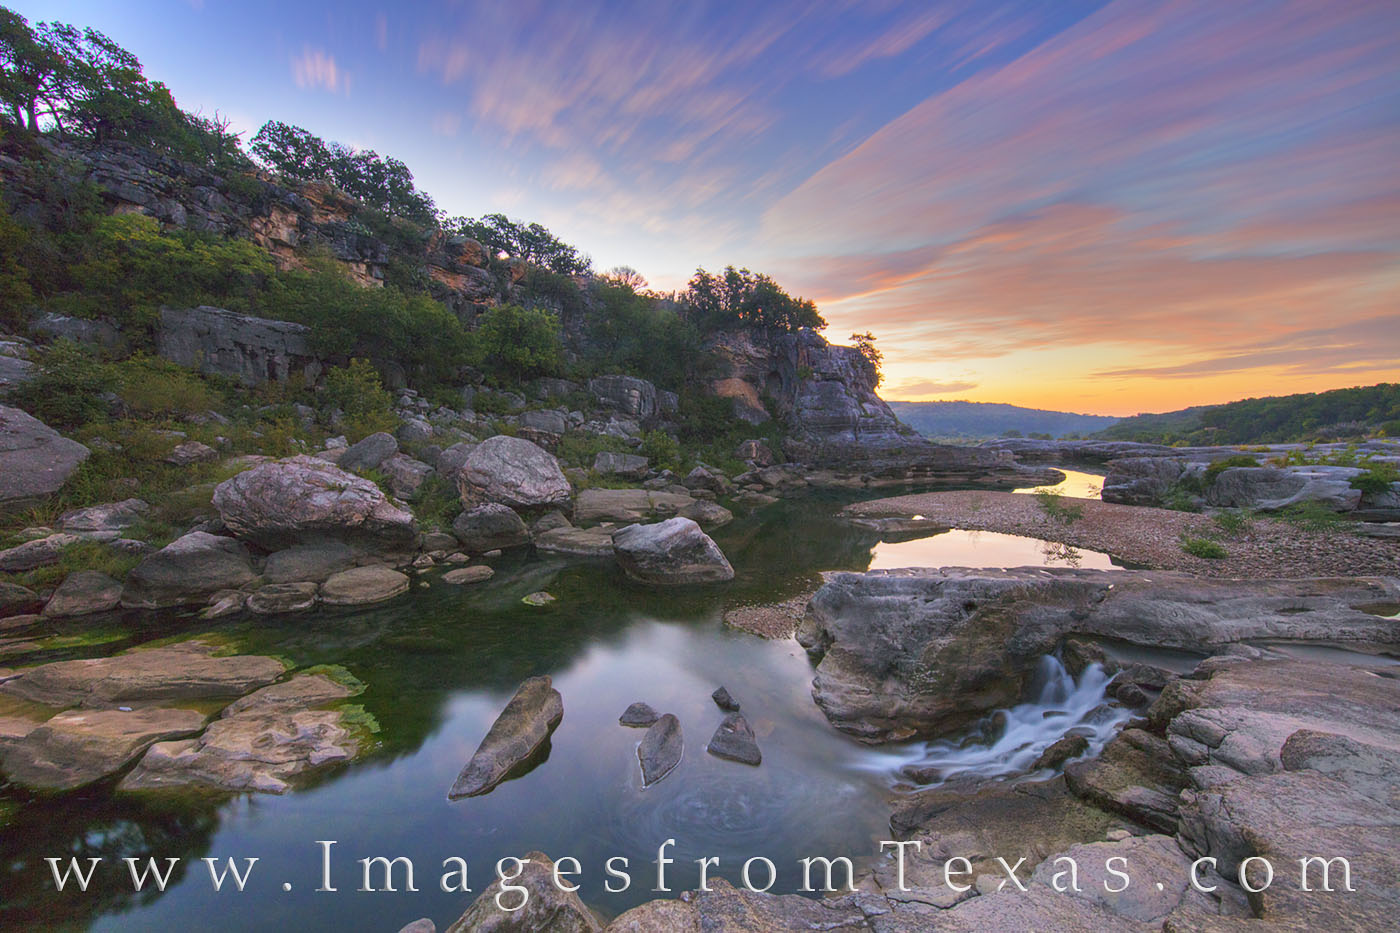 texas hill country, hill country, pedernales, pedernales river, sunrise, texas sunrise, texas morning, water, peace, hill country images, texas hikes, photo